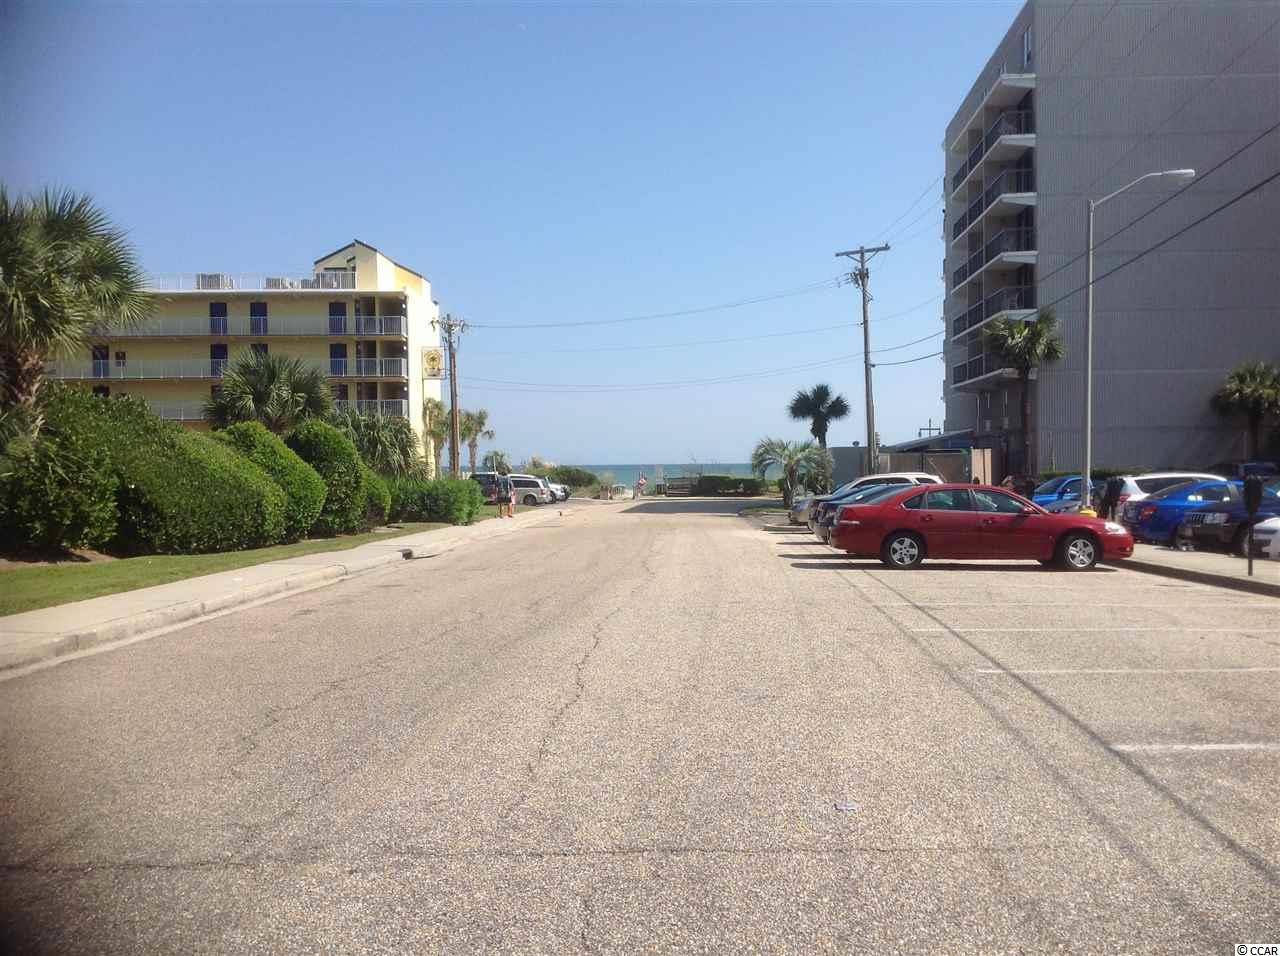 Tower I condo for sale in Myrtle Beach, SC